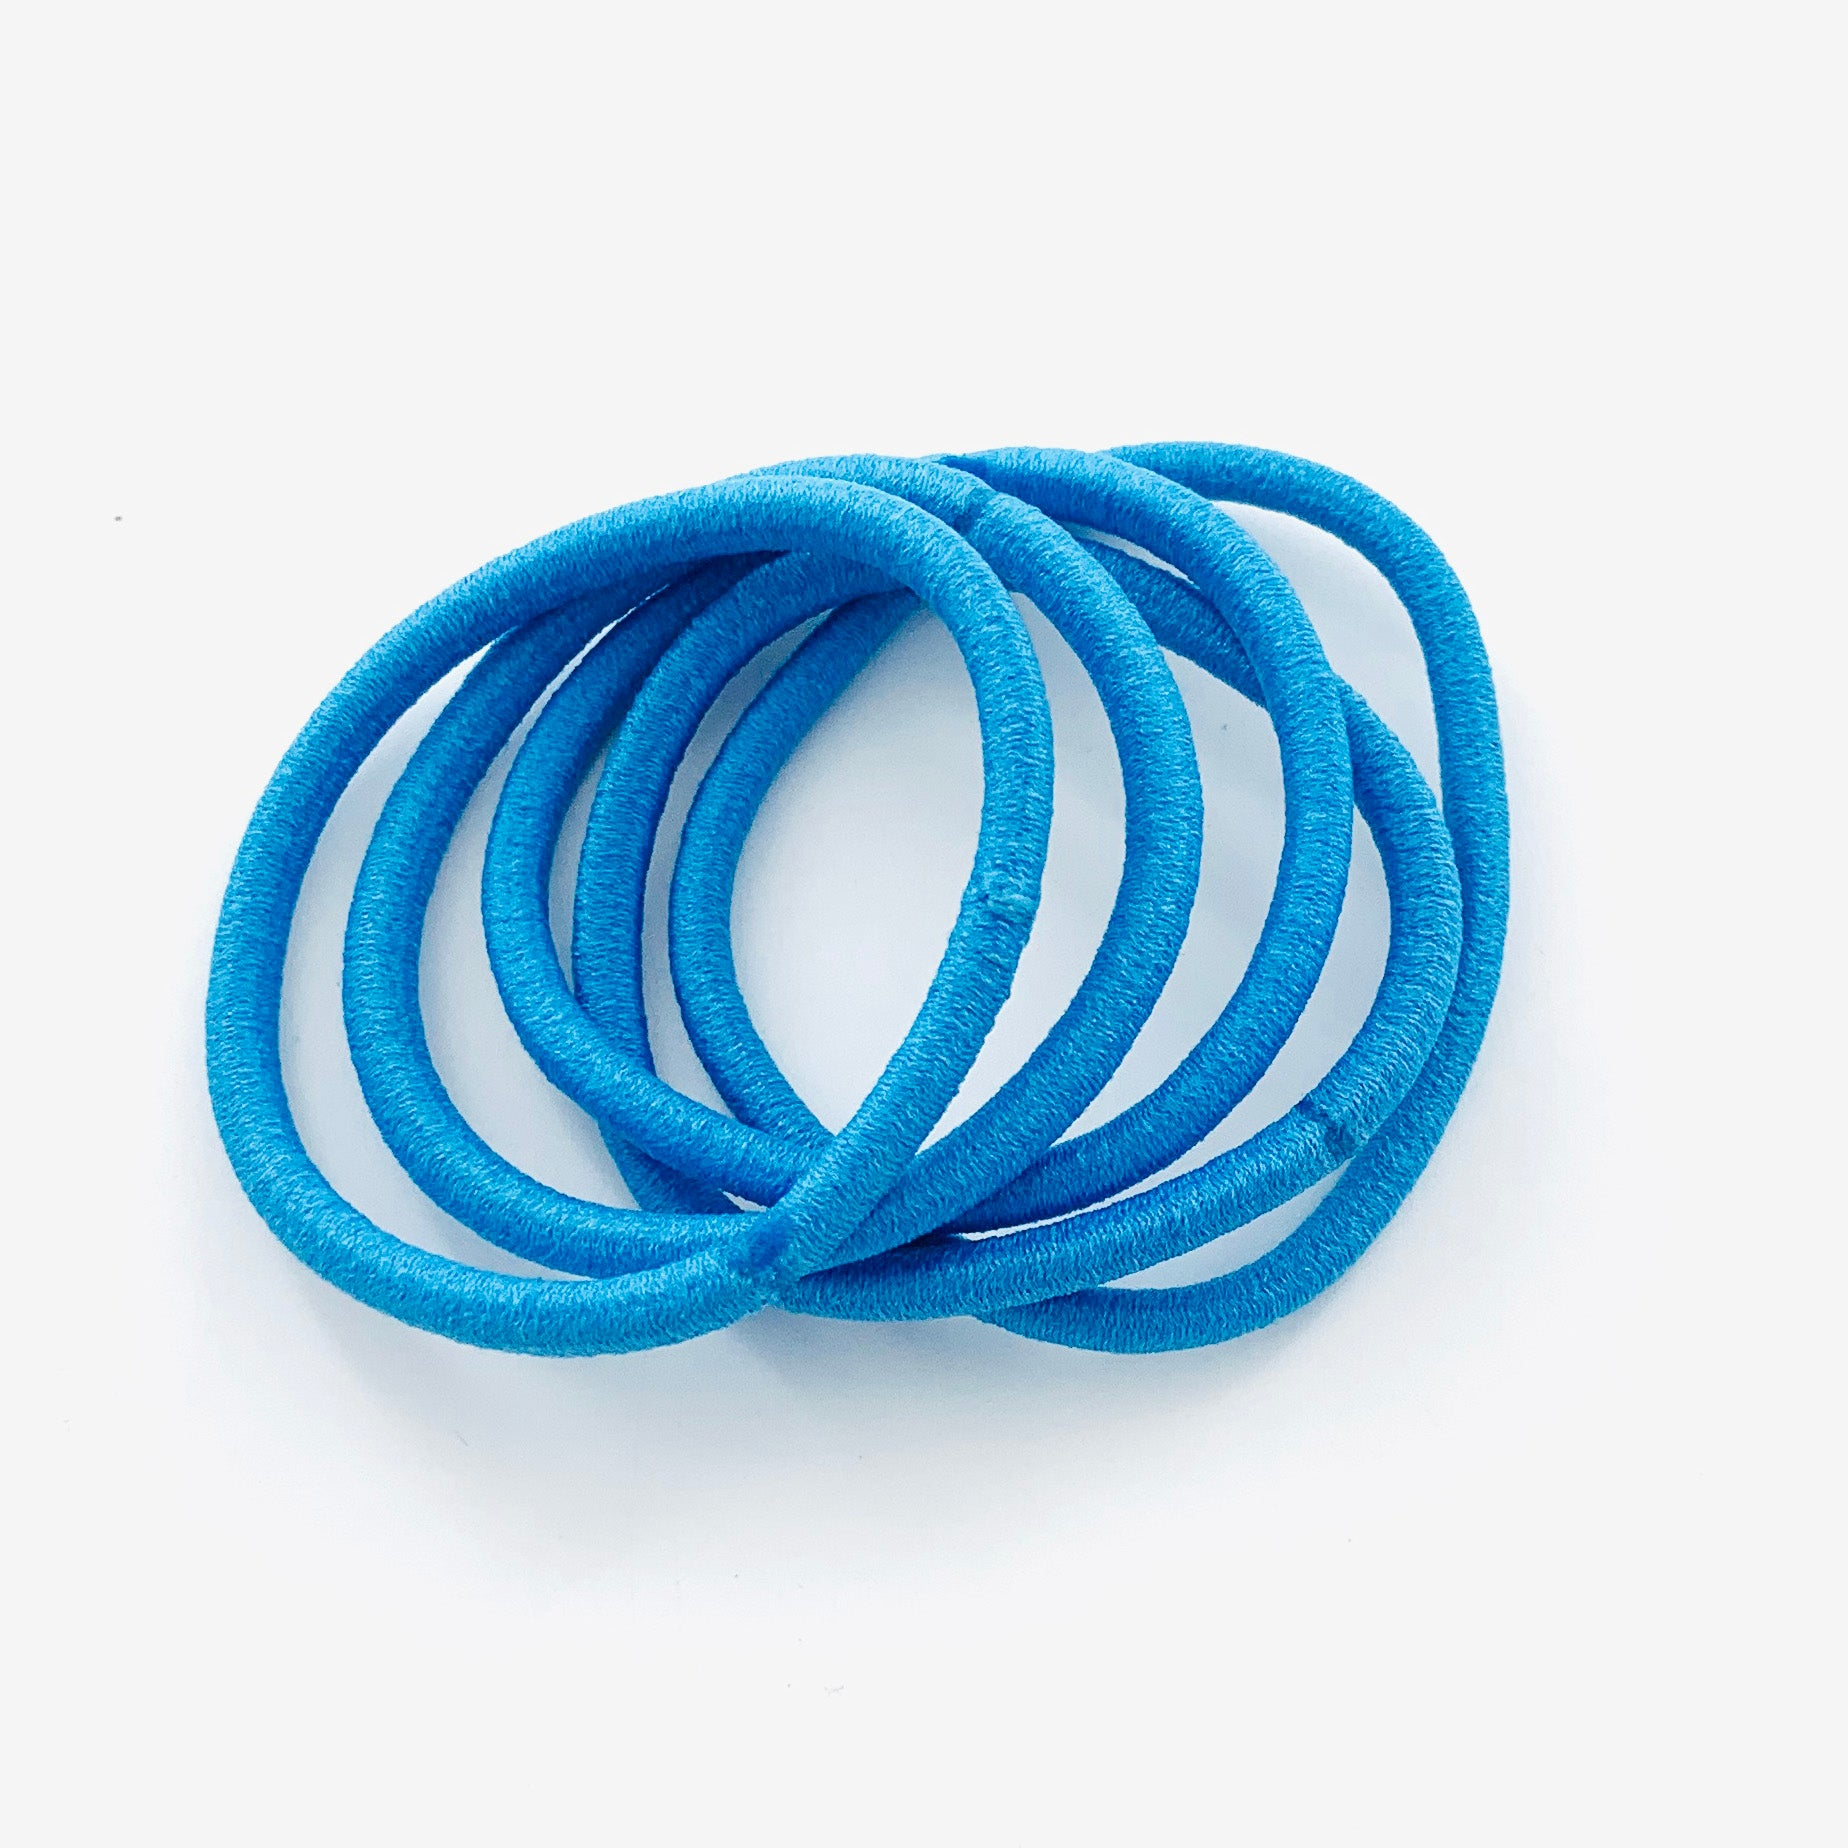 Rubber bands in blue